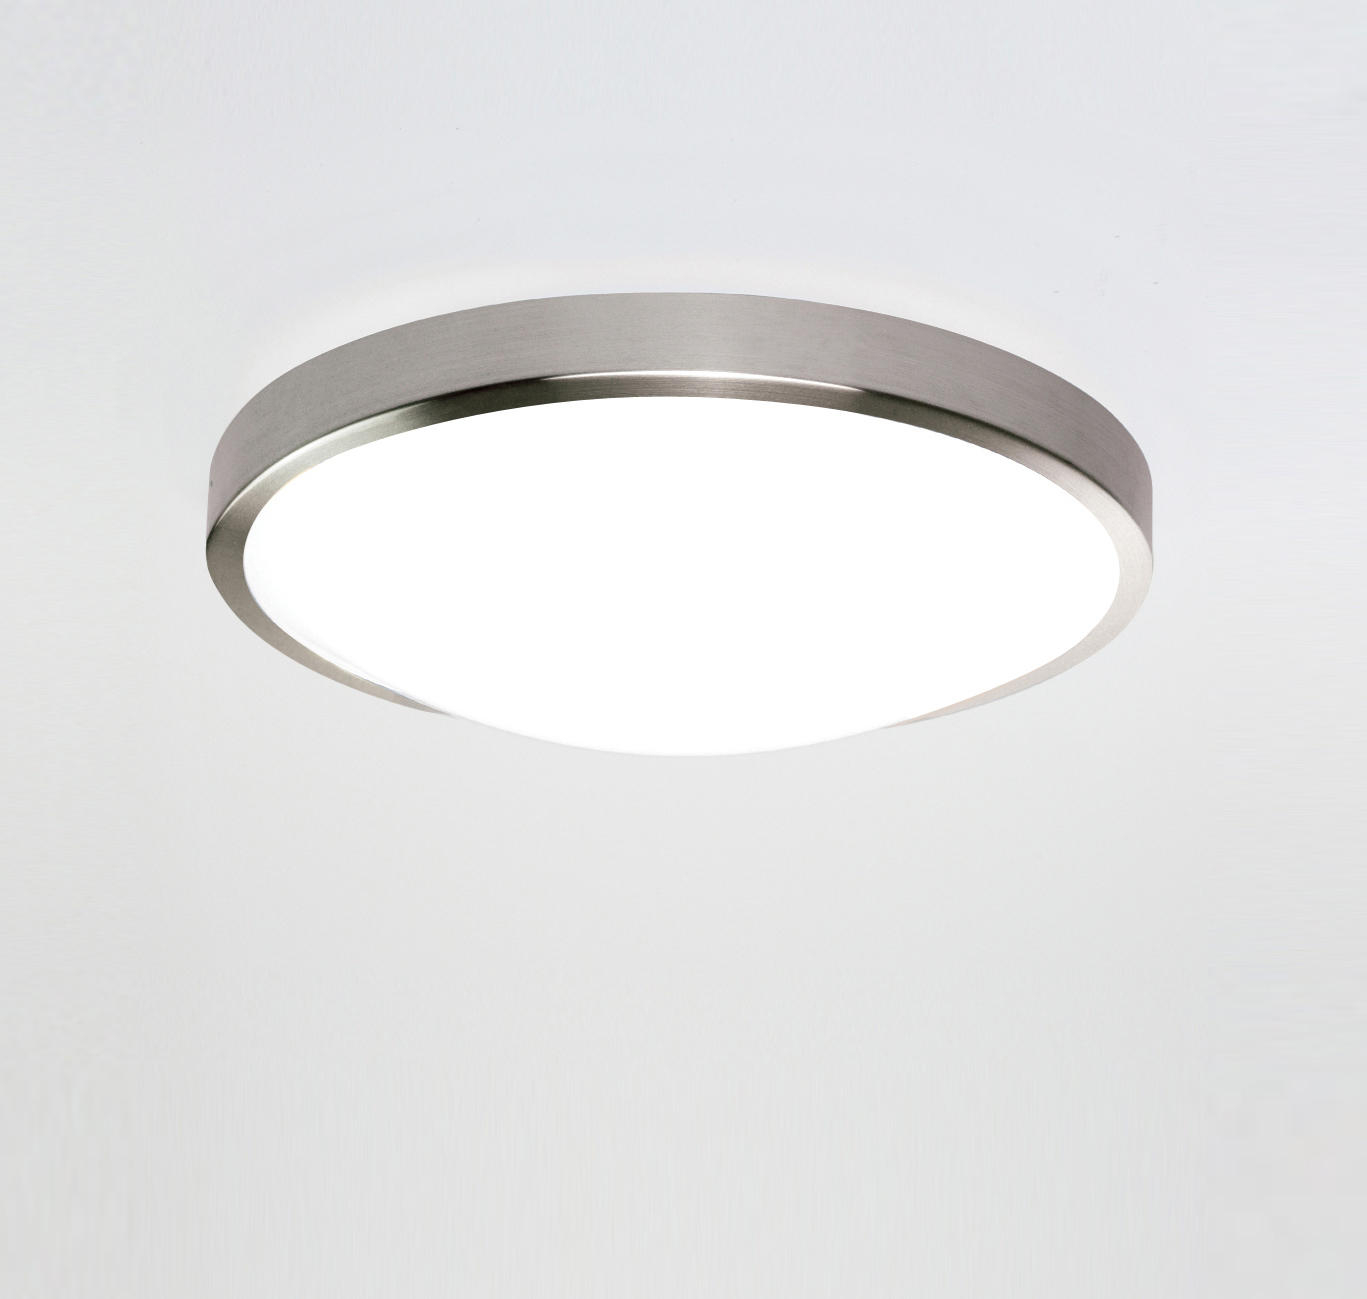 Gewaltig Nickel Matt Referenz Von Osaka Sensor By Astro Lighting | Ceiling